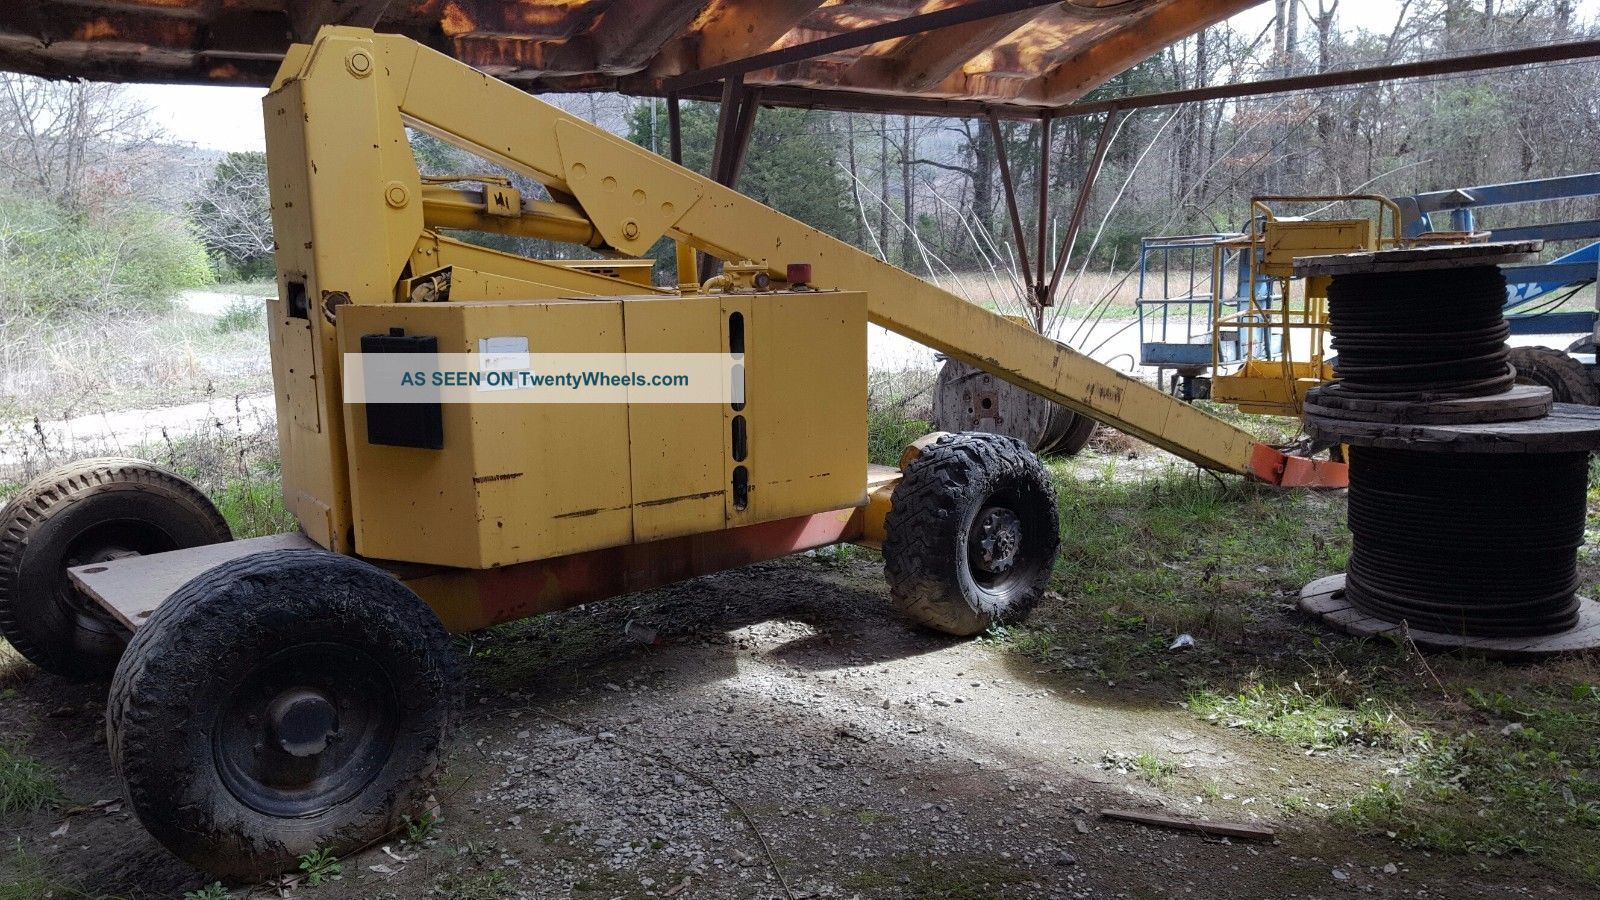 1990 Jlg 60 Ha Boom Lift.  Jlg Boom Lift.  Jlg 60 Boom Lift.  Boom Lift. Scissor & Boom Lifts photo